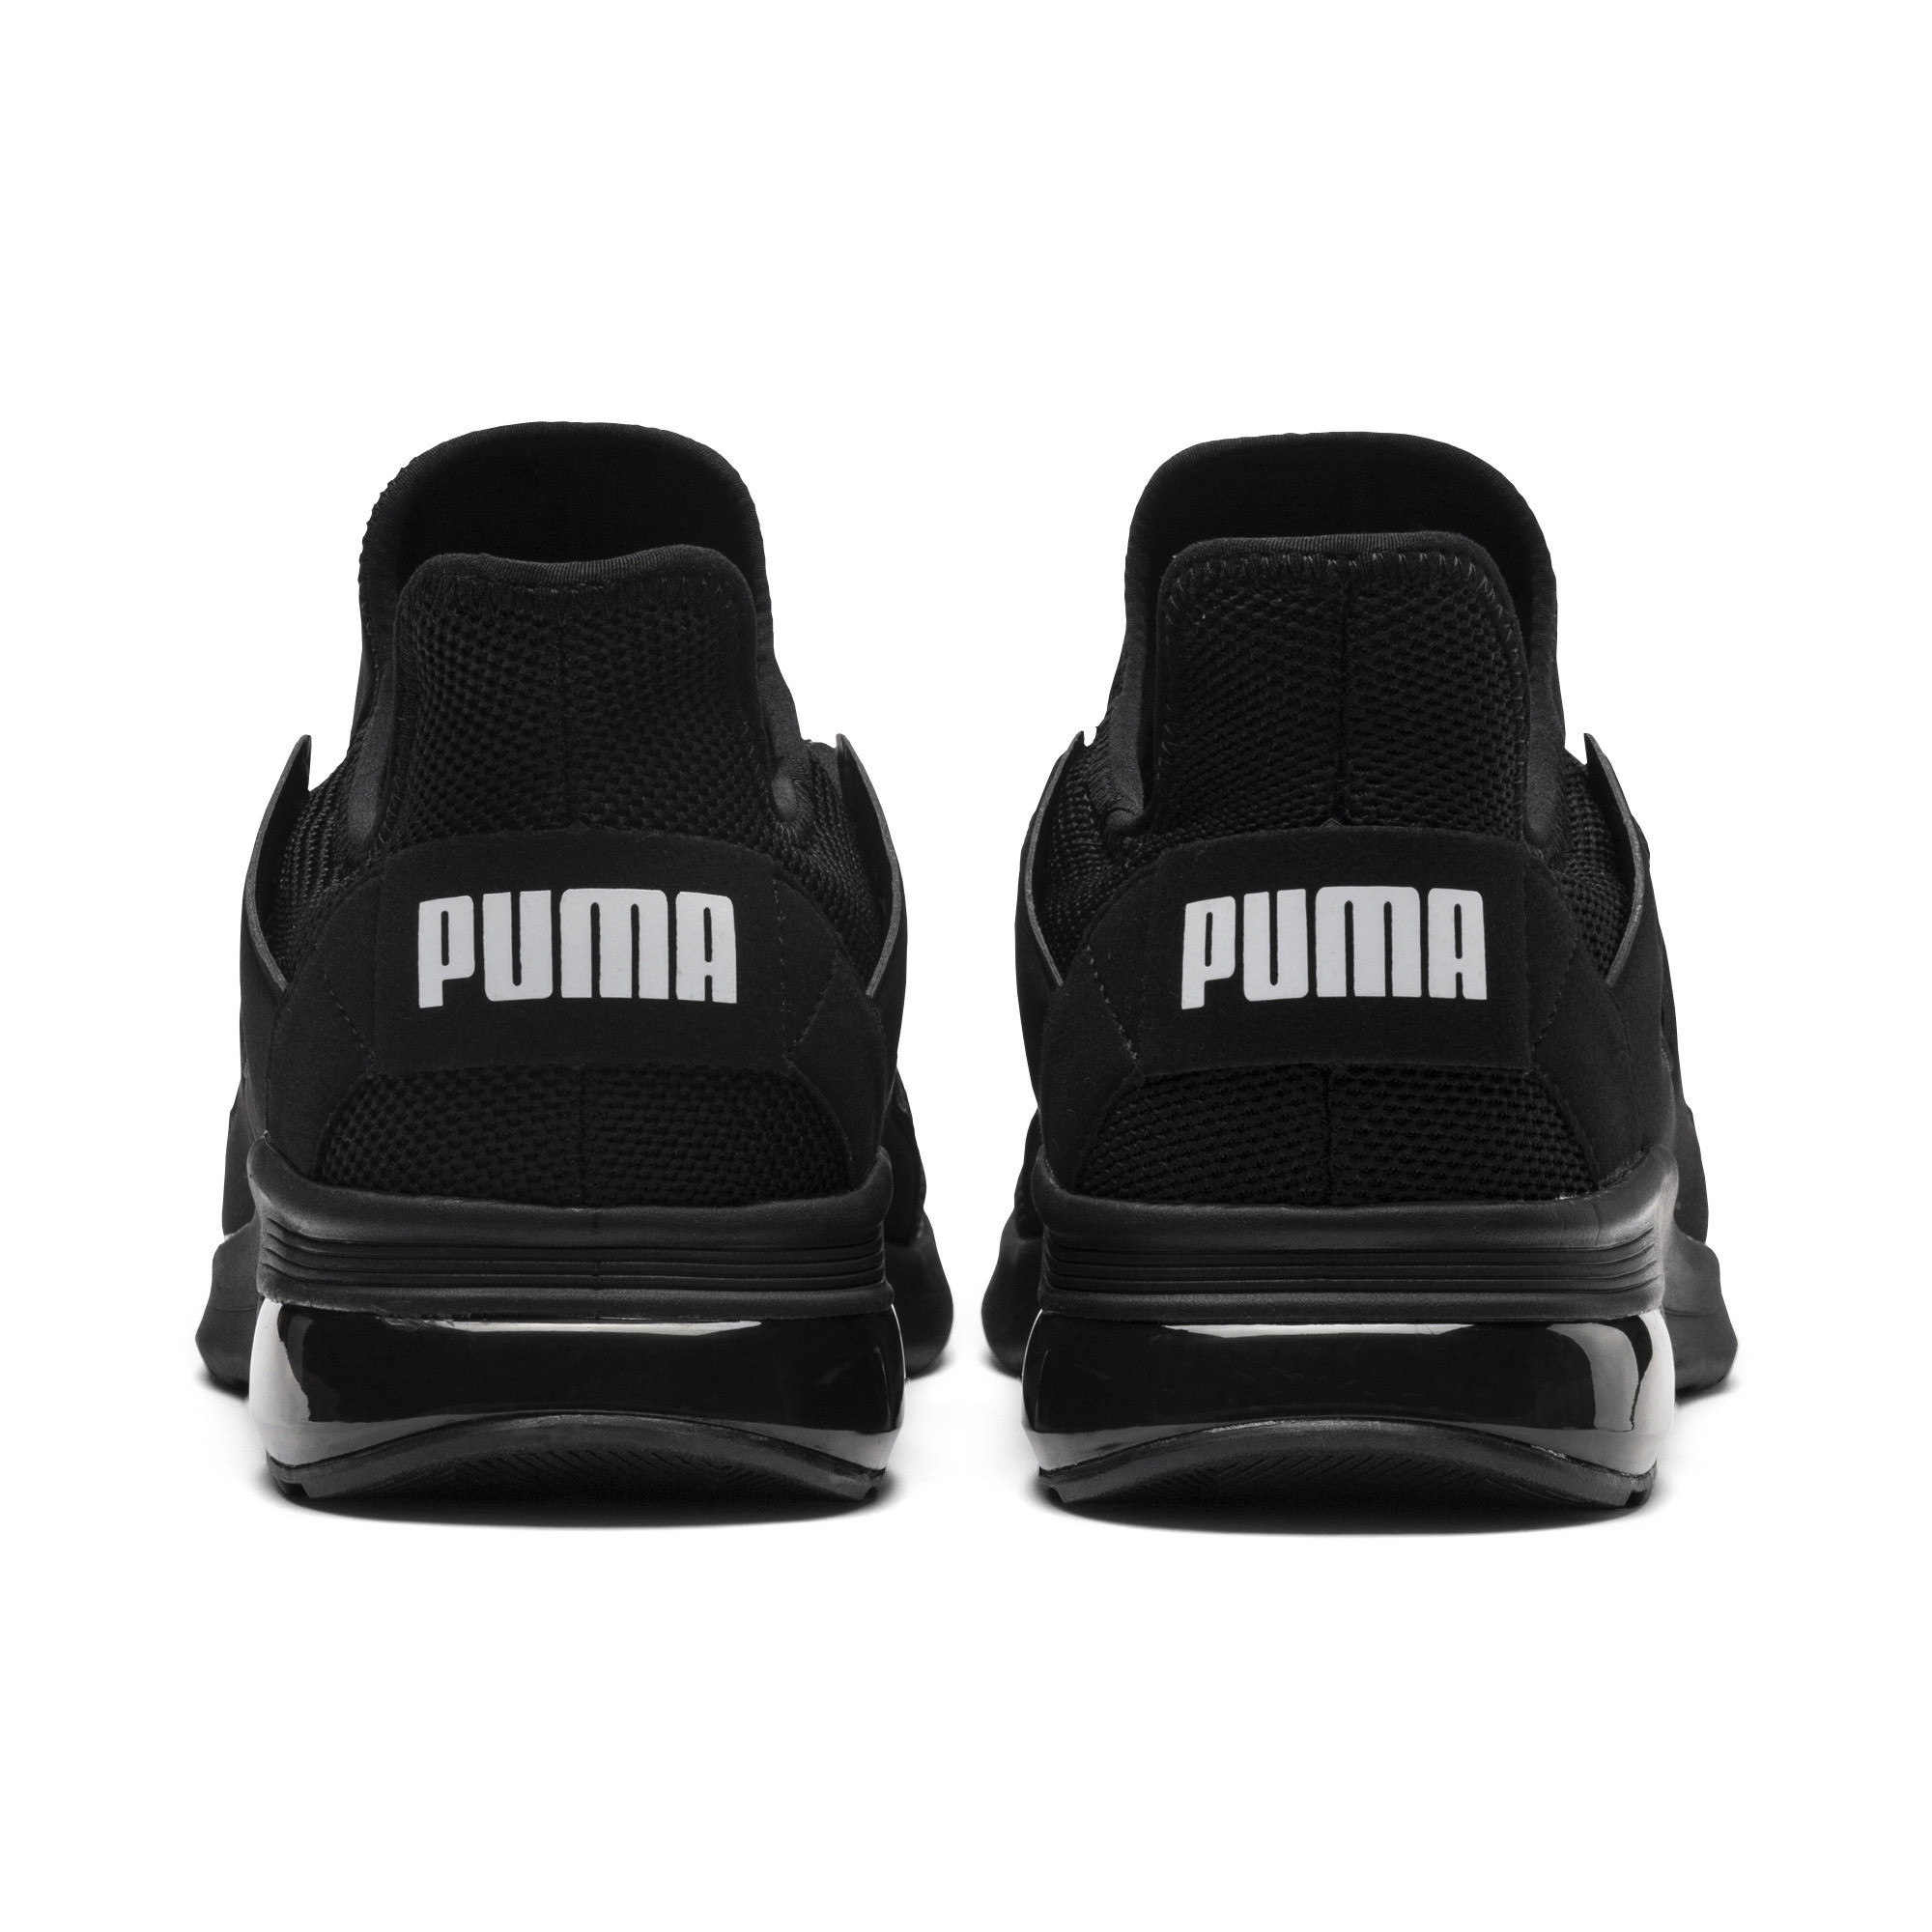 PUMA-Electron-Street-Sneakers-Men-Shoe-Basics thumbnail 9